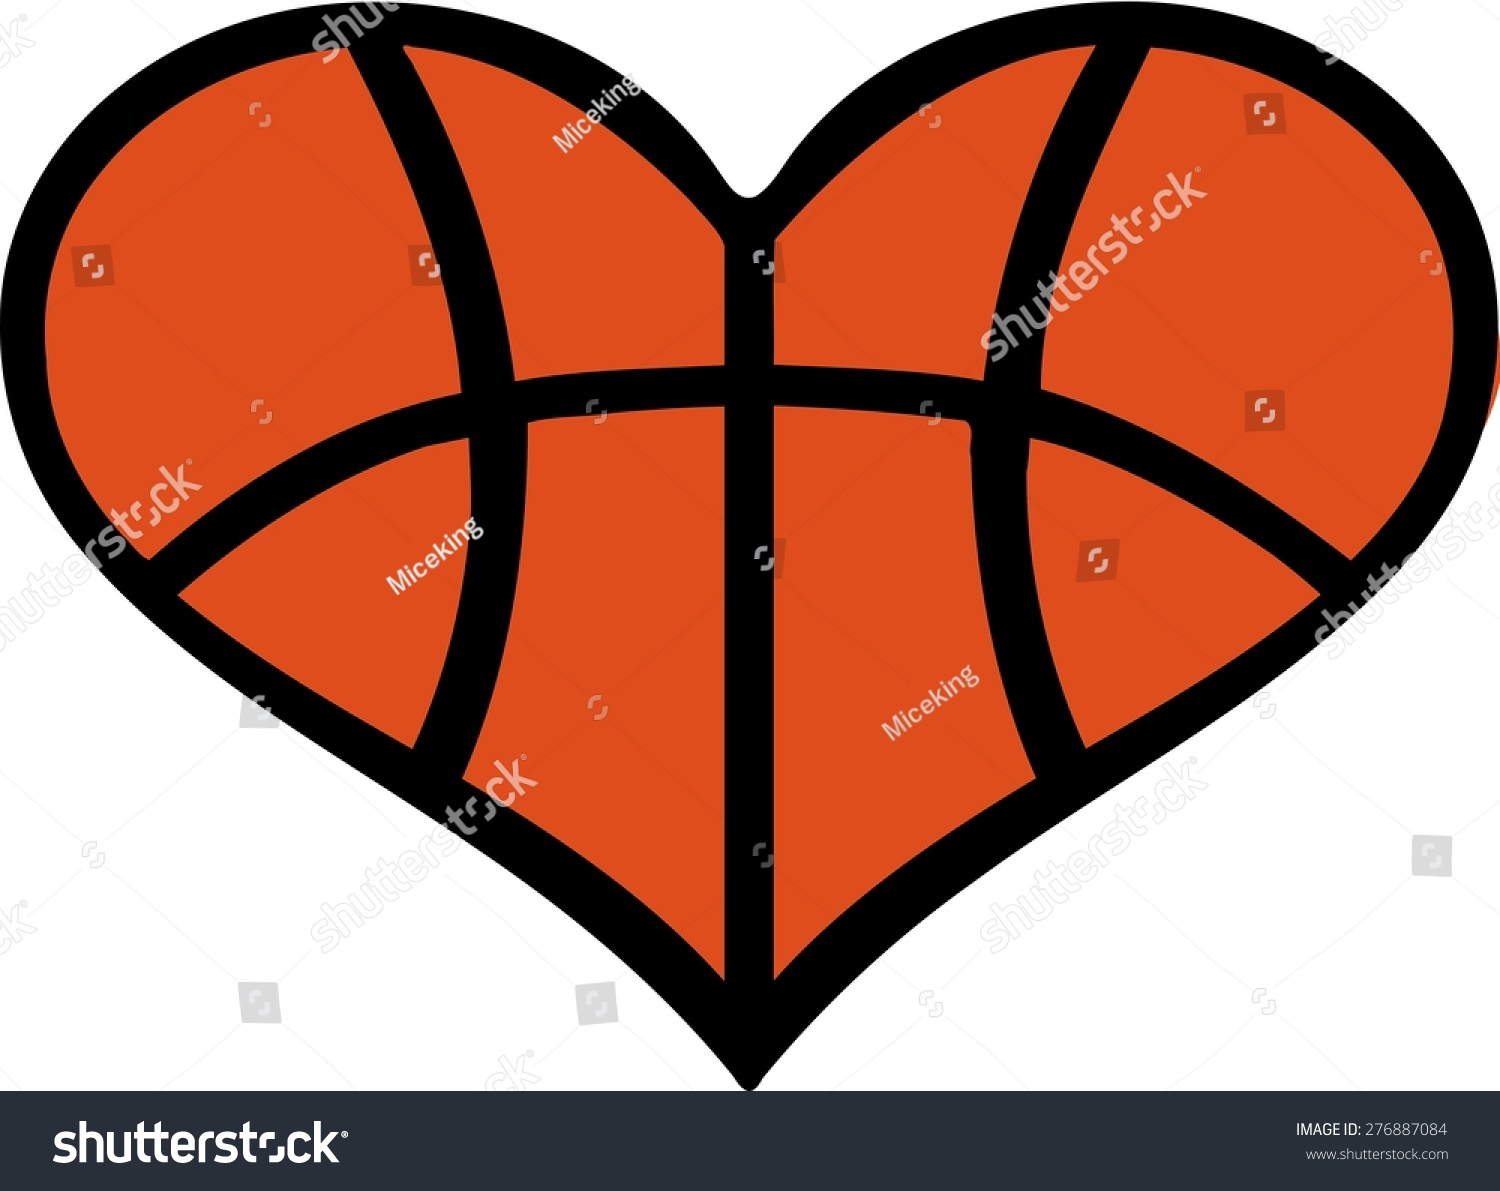 Heartbeat Pattern Heartbeat Vector Pattern Vector: Heart Basketball Pattern Stock Vector 276887084